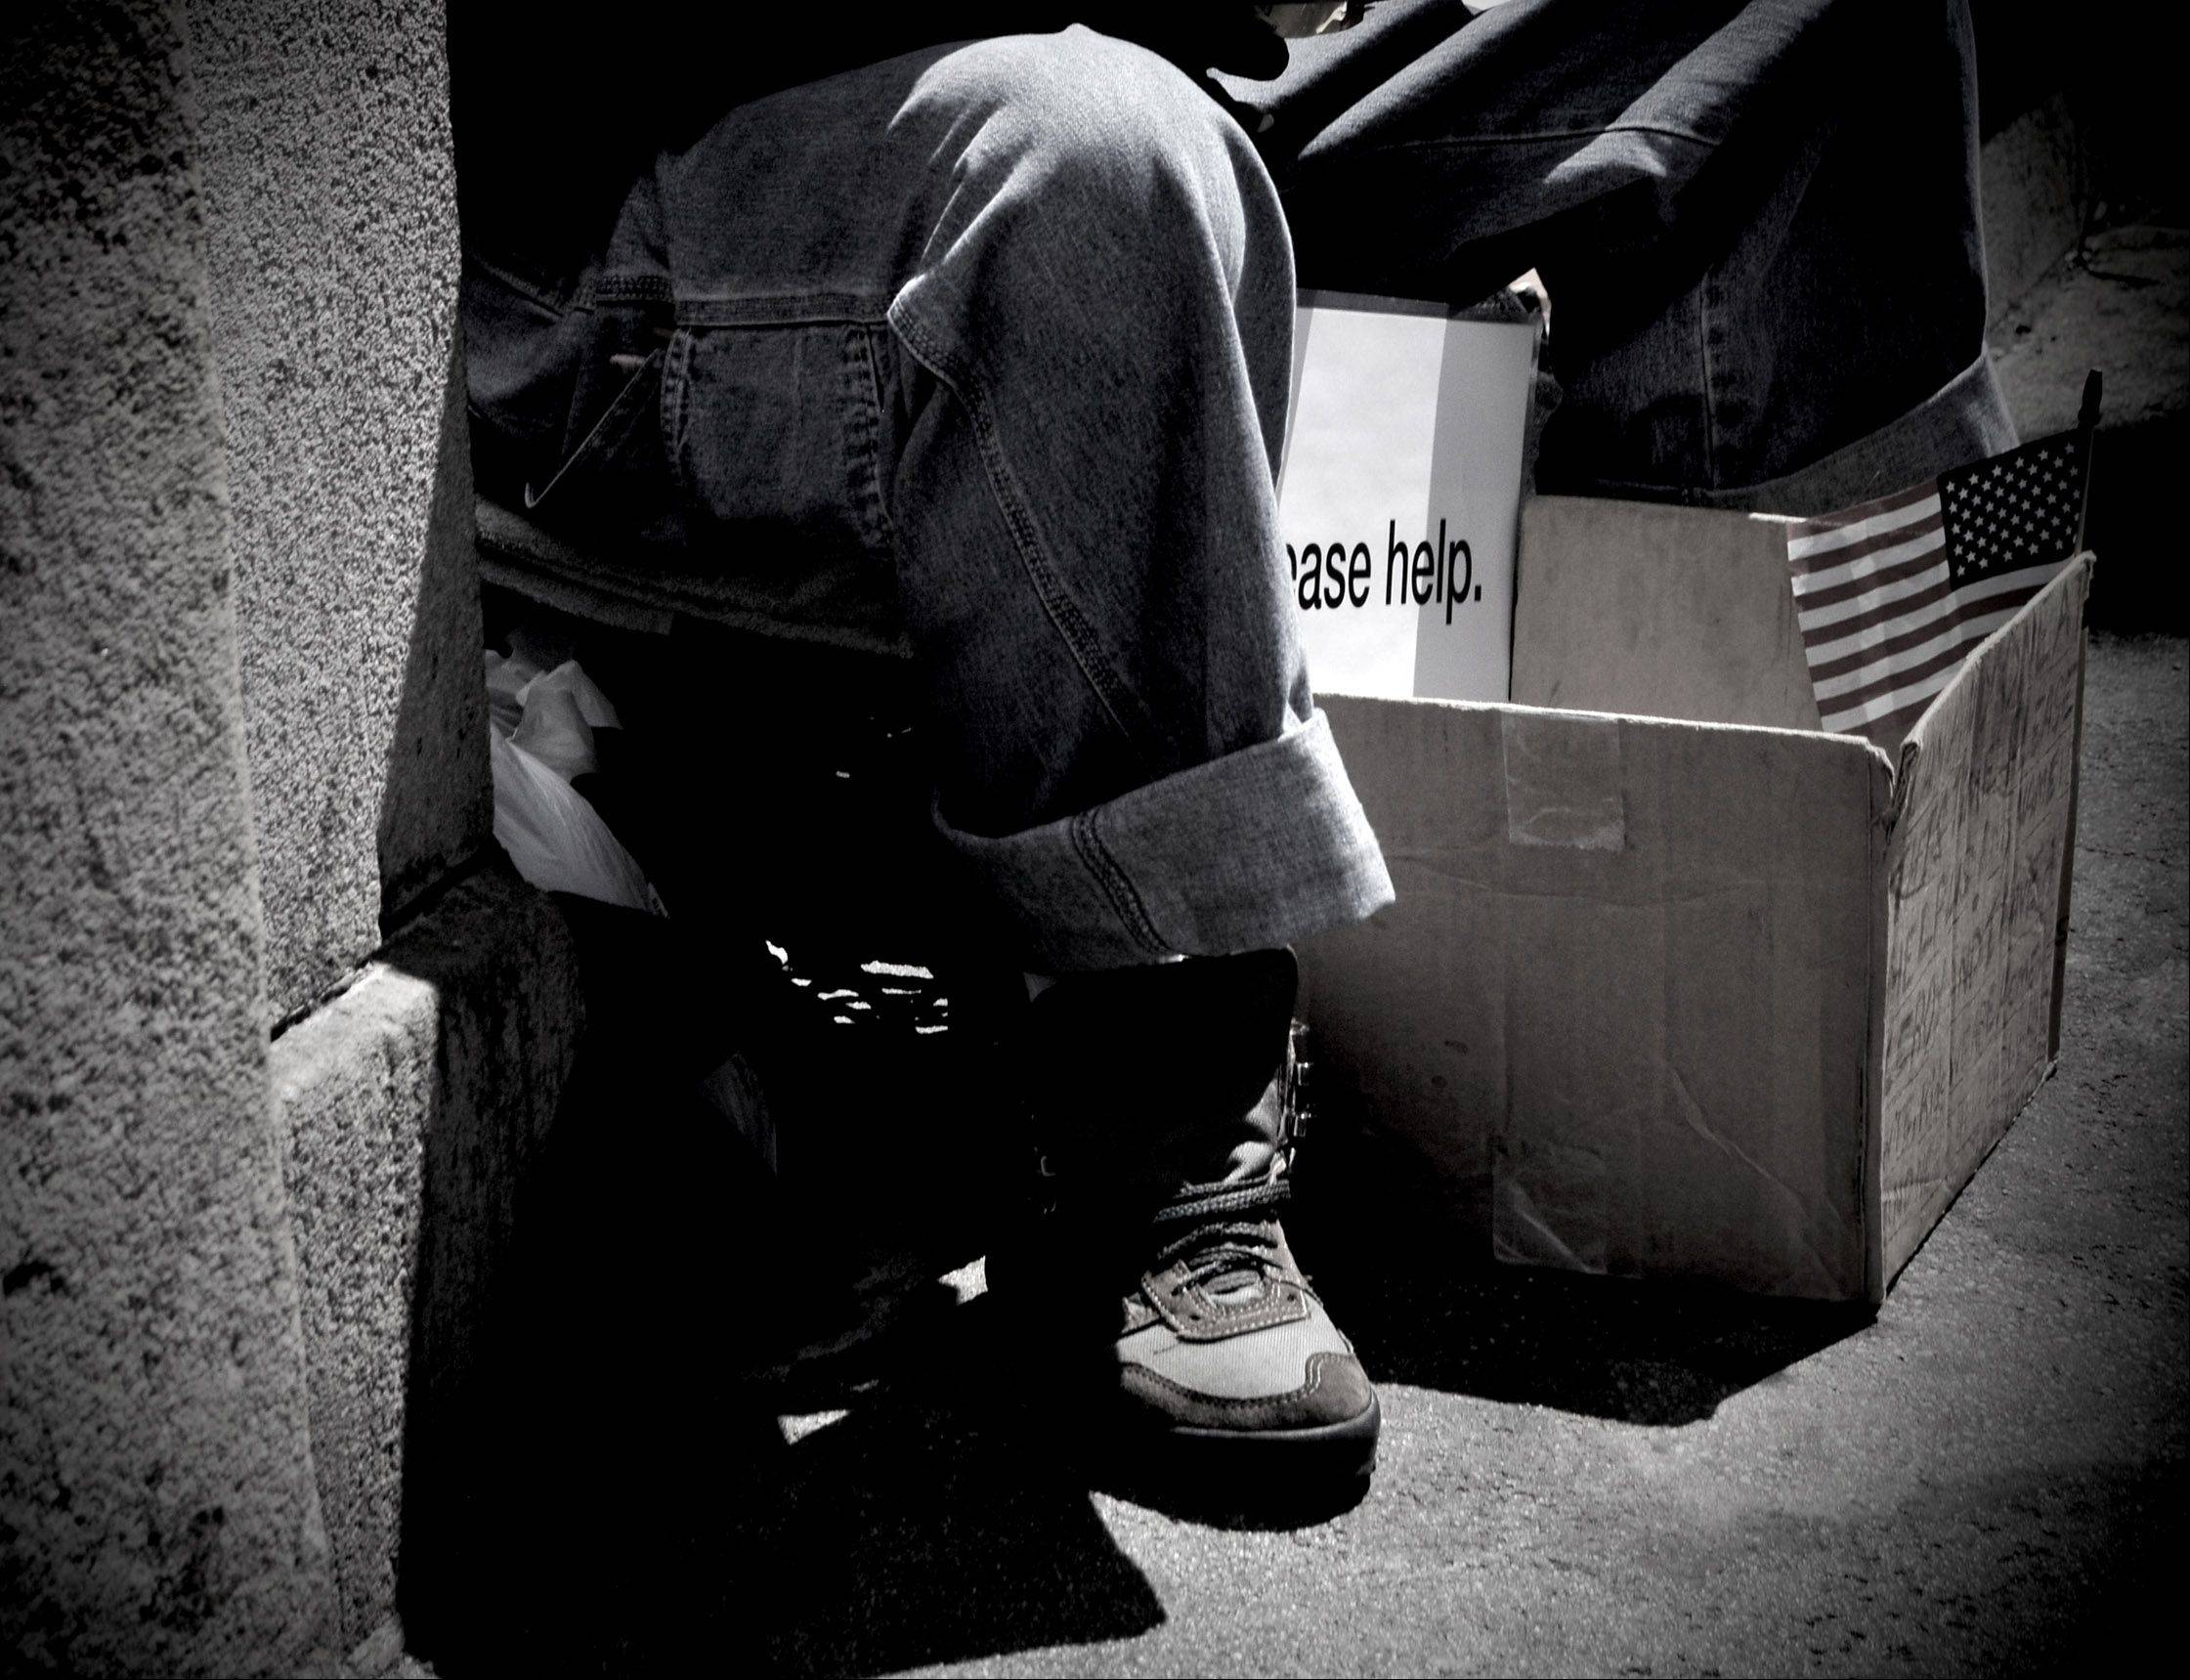 A man looks for a helping hand in Chicago during the summer of 2012.